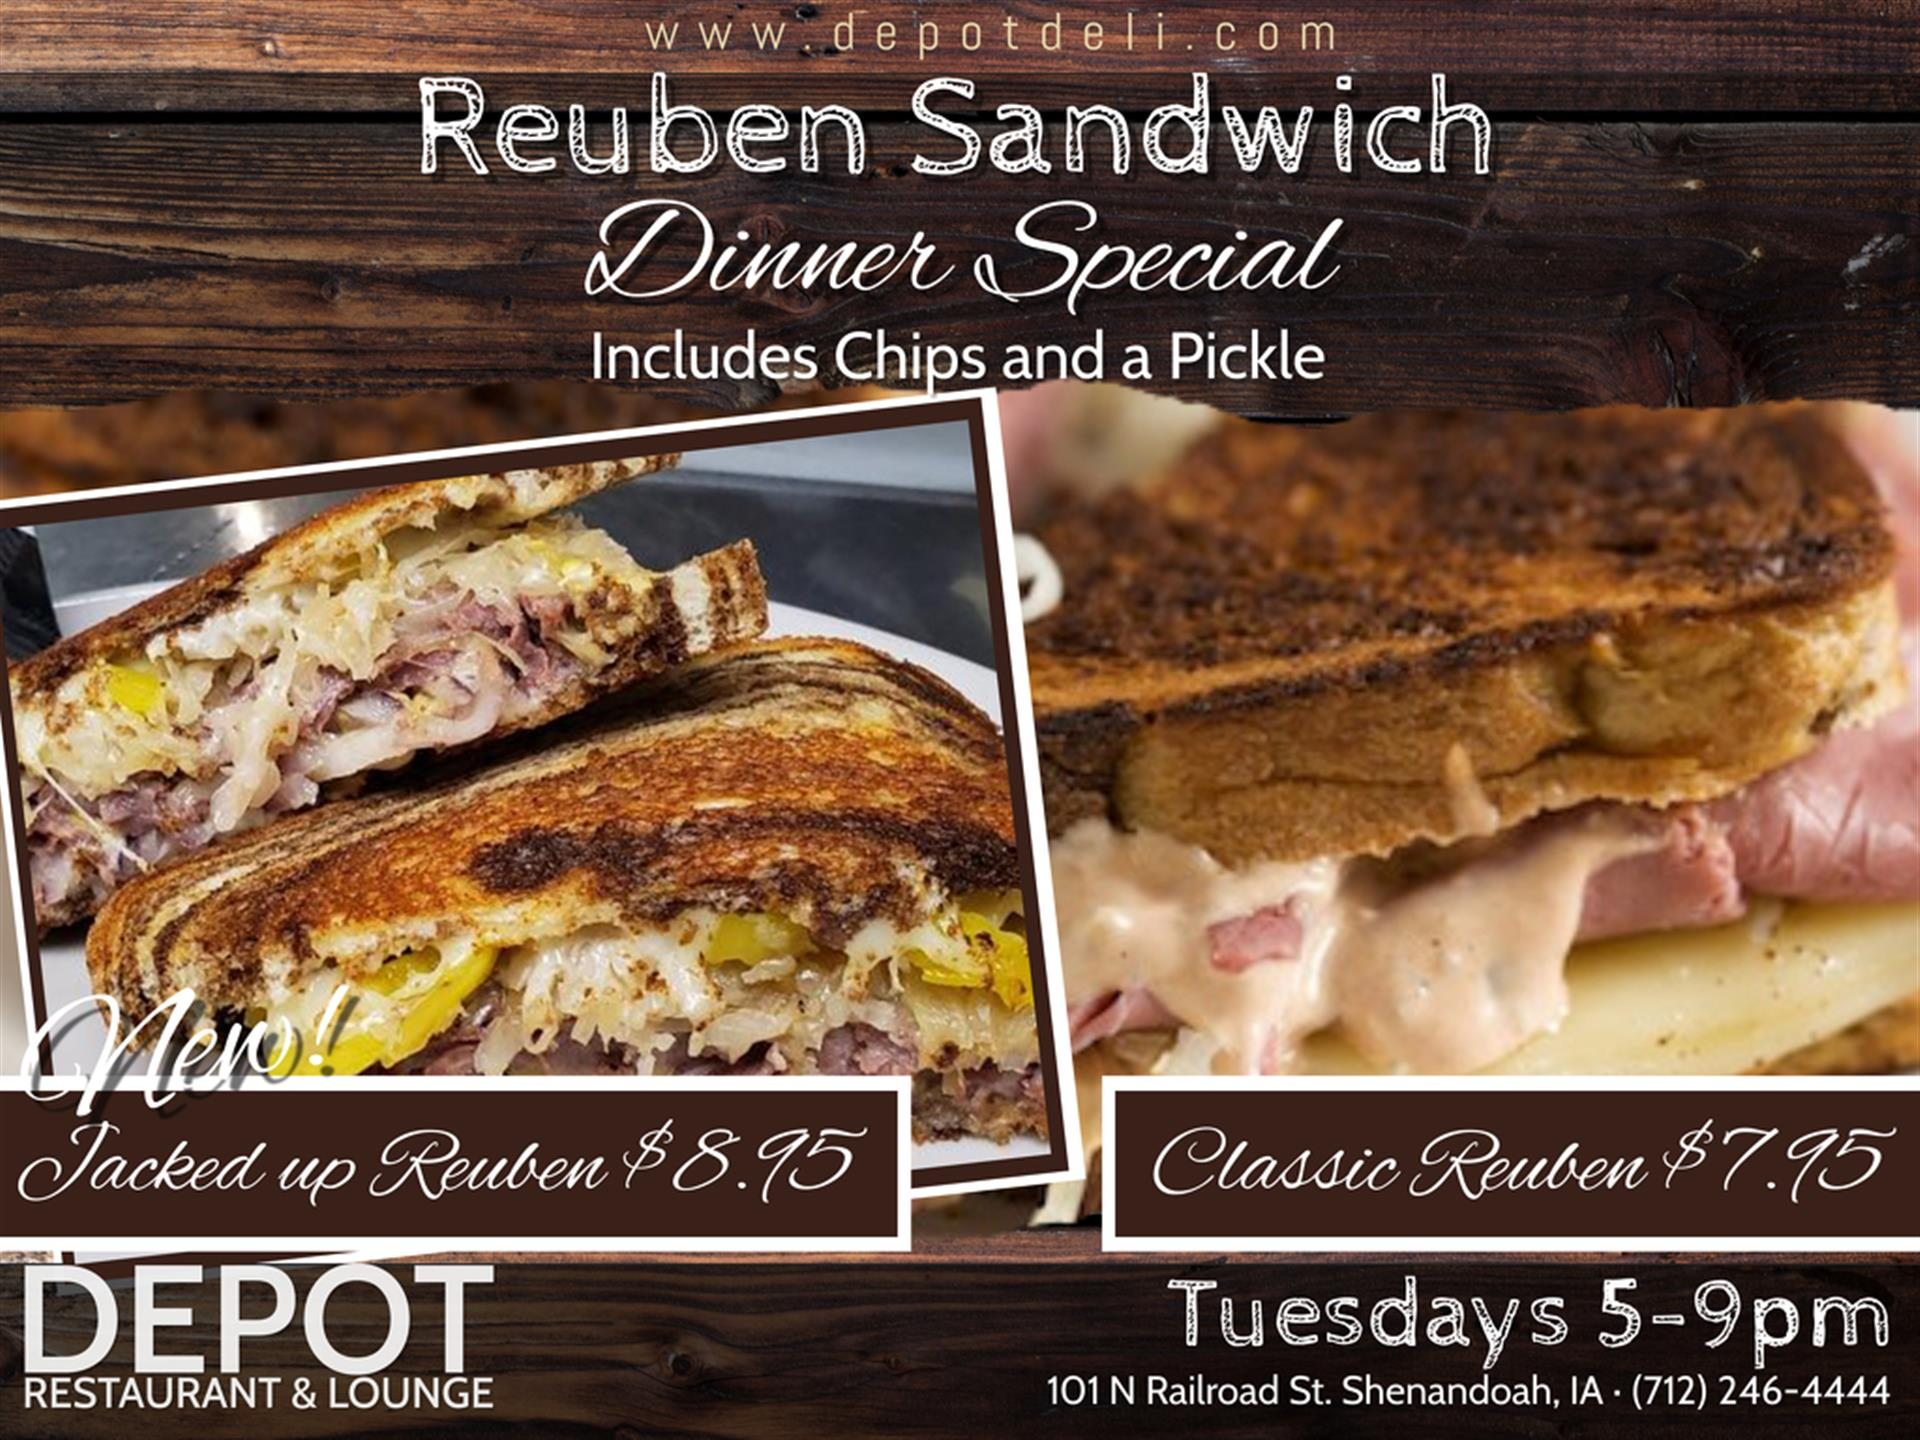 Tuesday Dinner Specials Classic Reuben Sandwich or Jacked up Reuben Sandwich with Chips and a Pickle